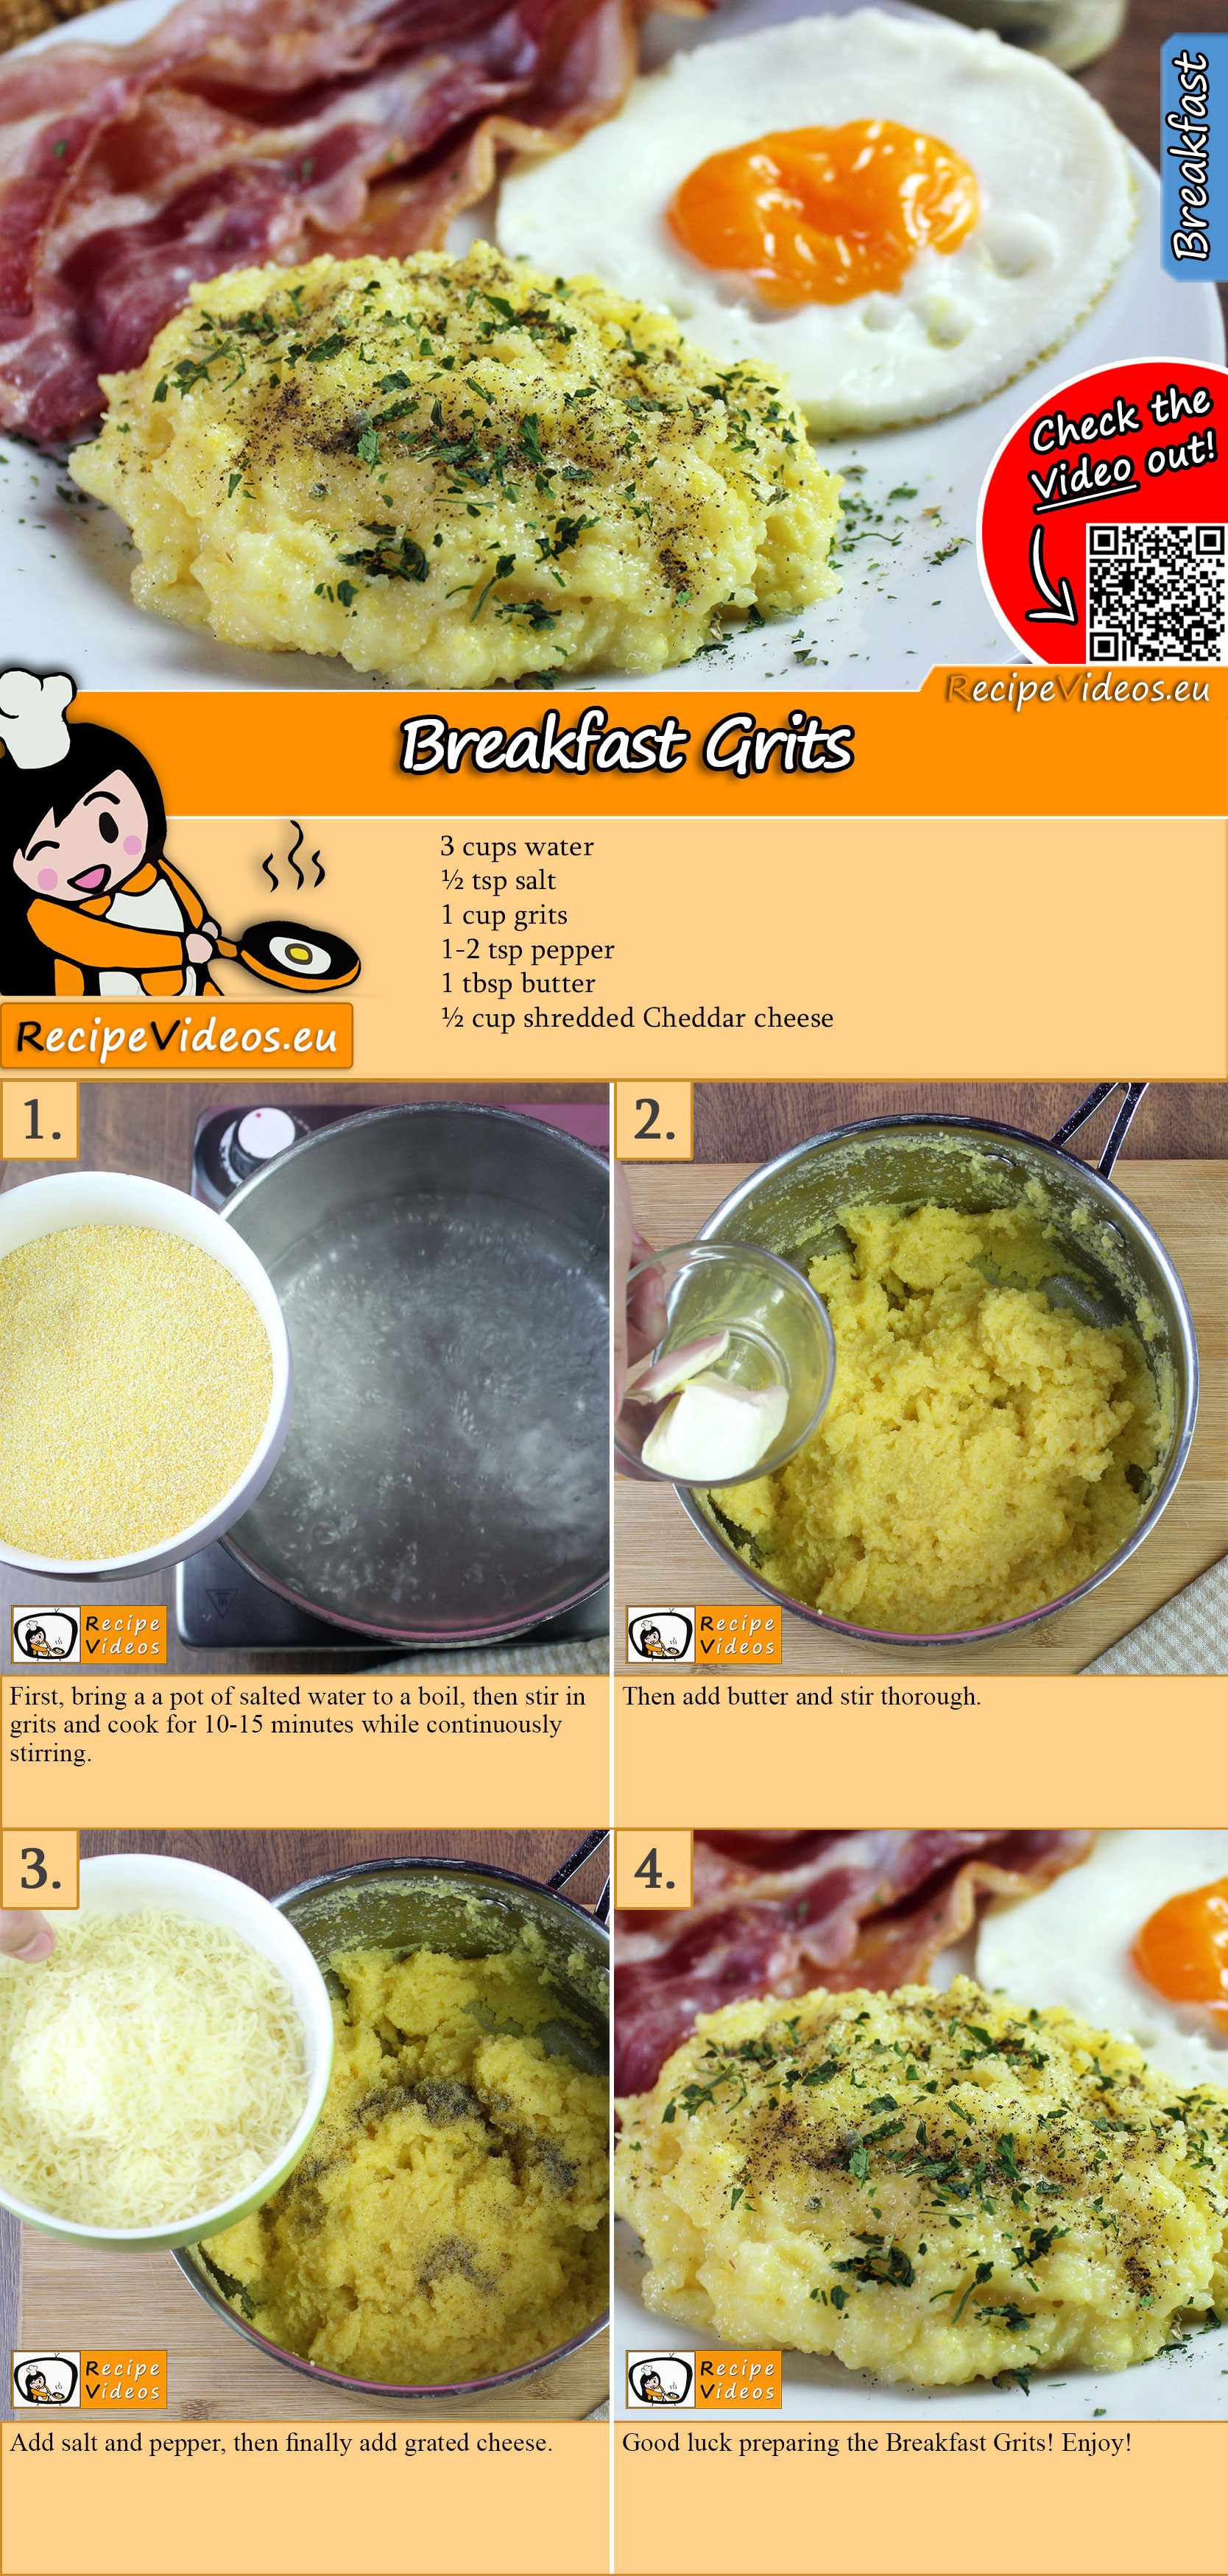 Breakfast grits recipe with video